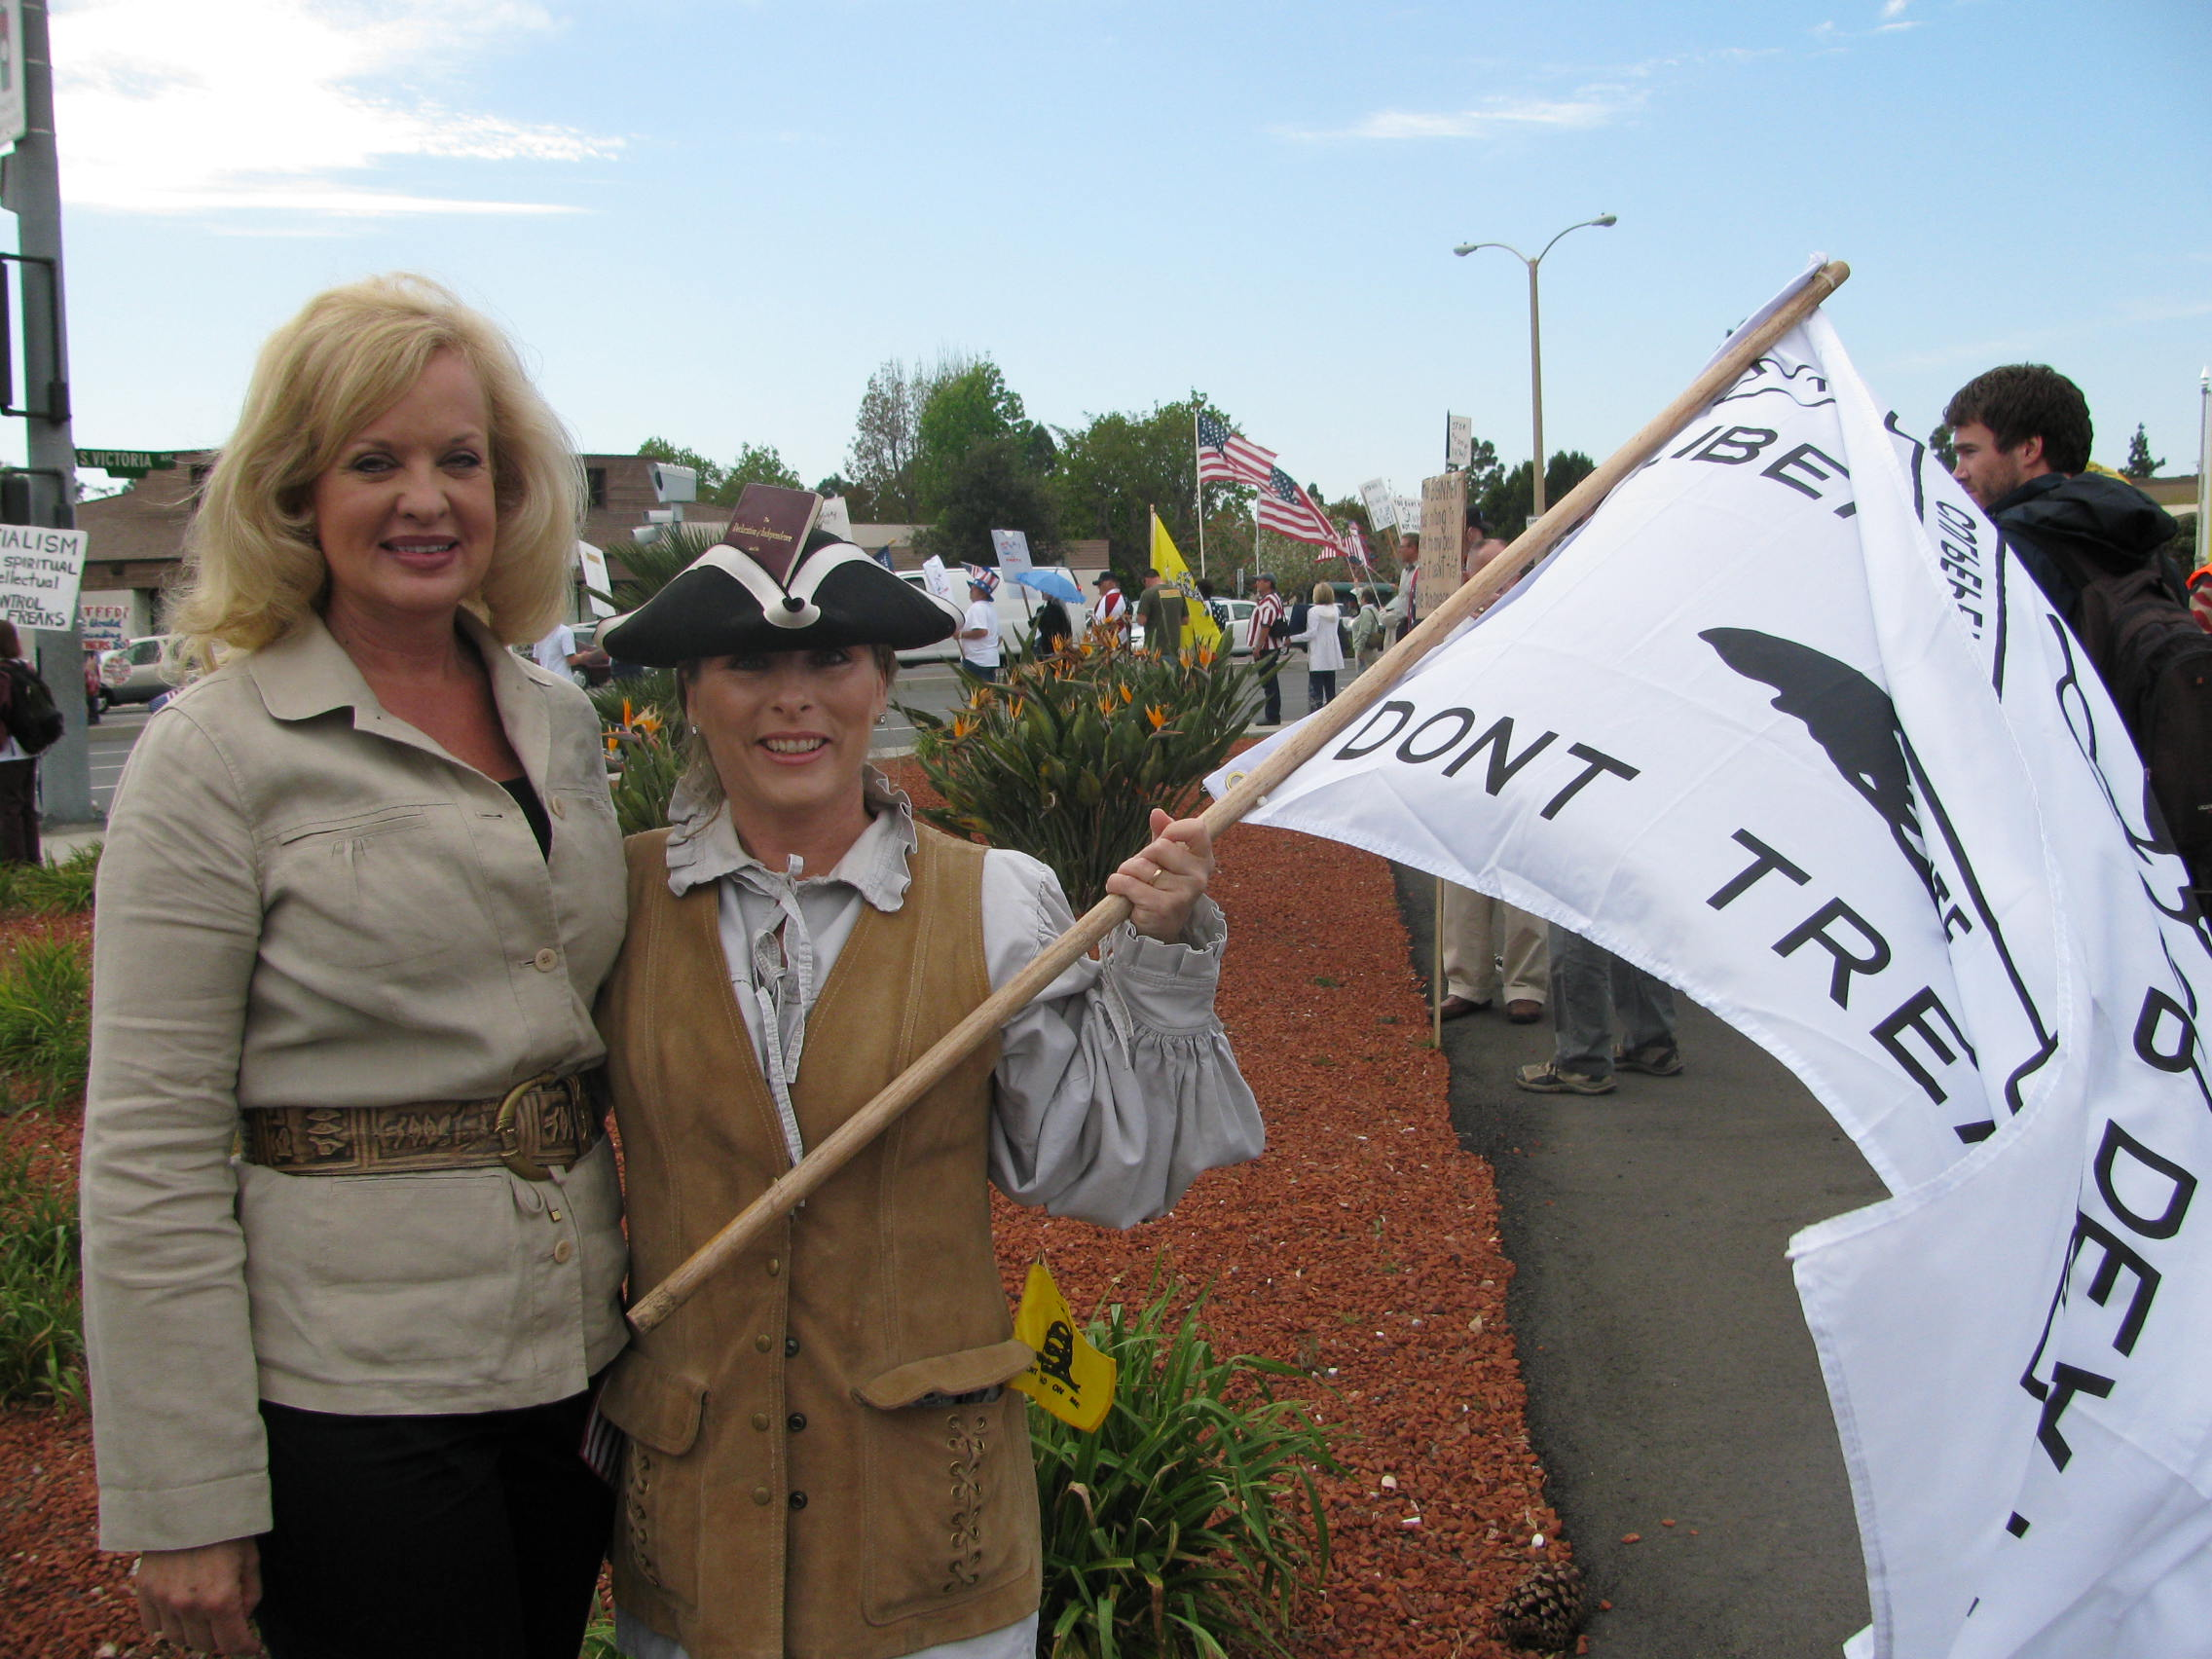 Gail with a colonial patriot